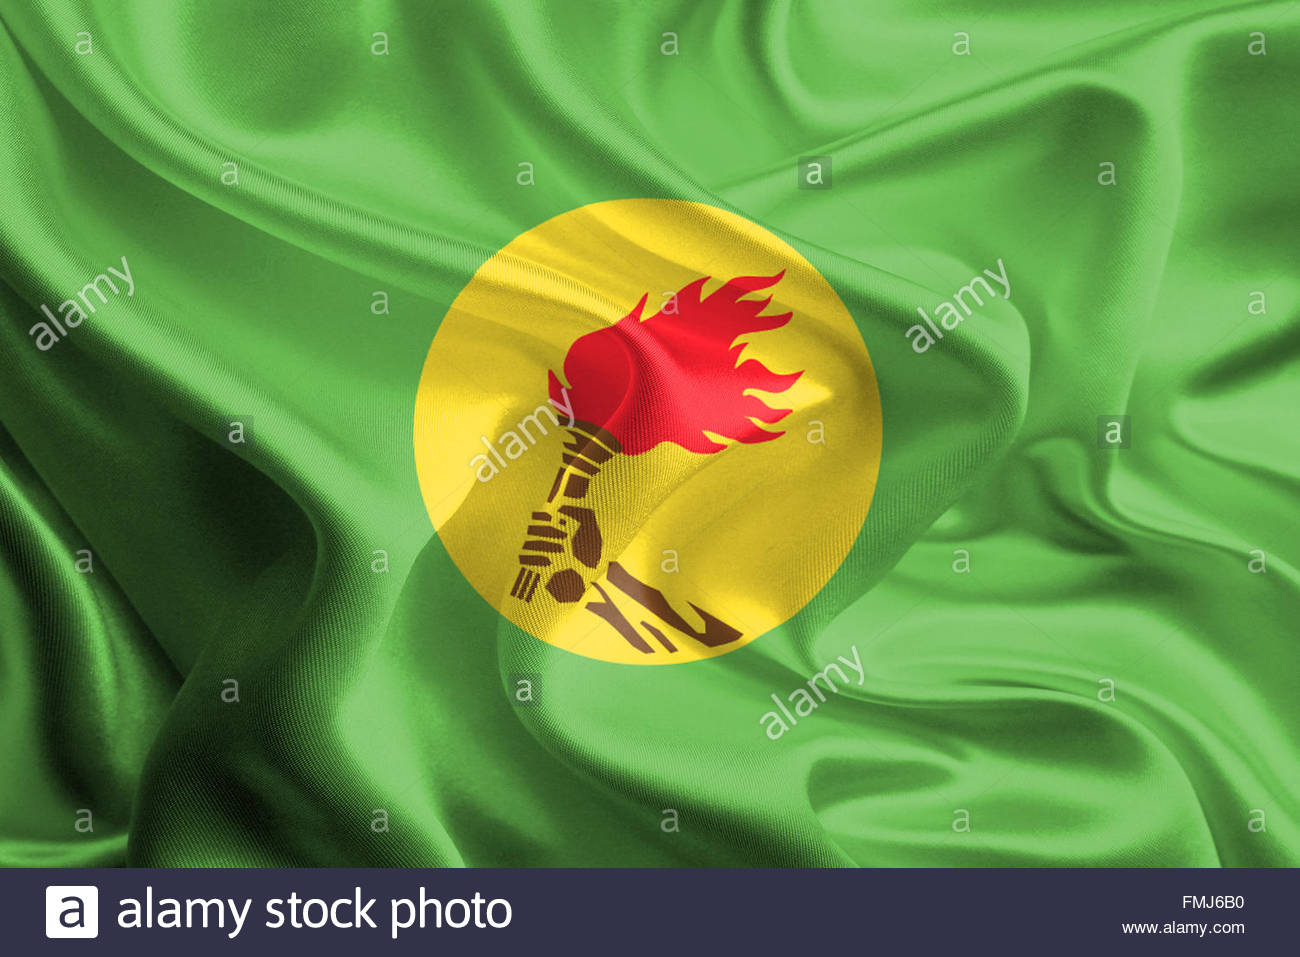 Waving Fabric Flag of Zaire - Stock Image